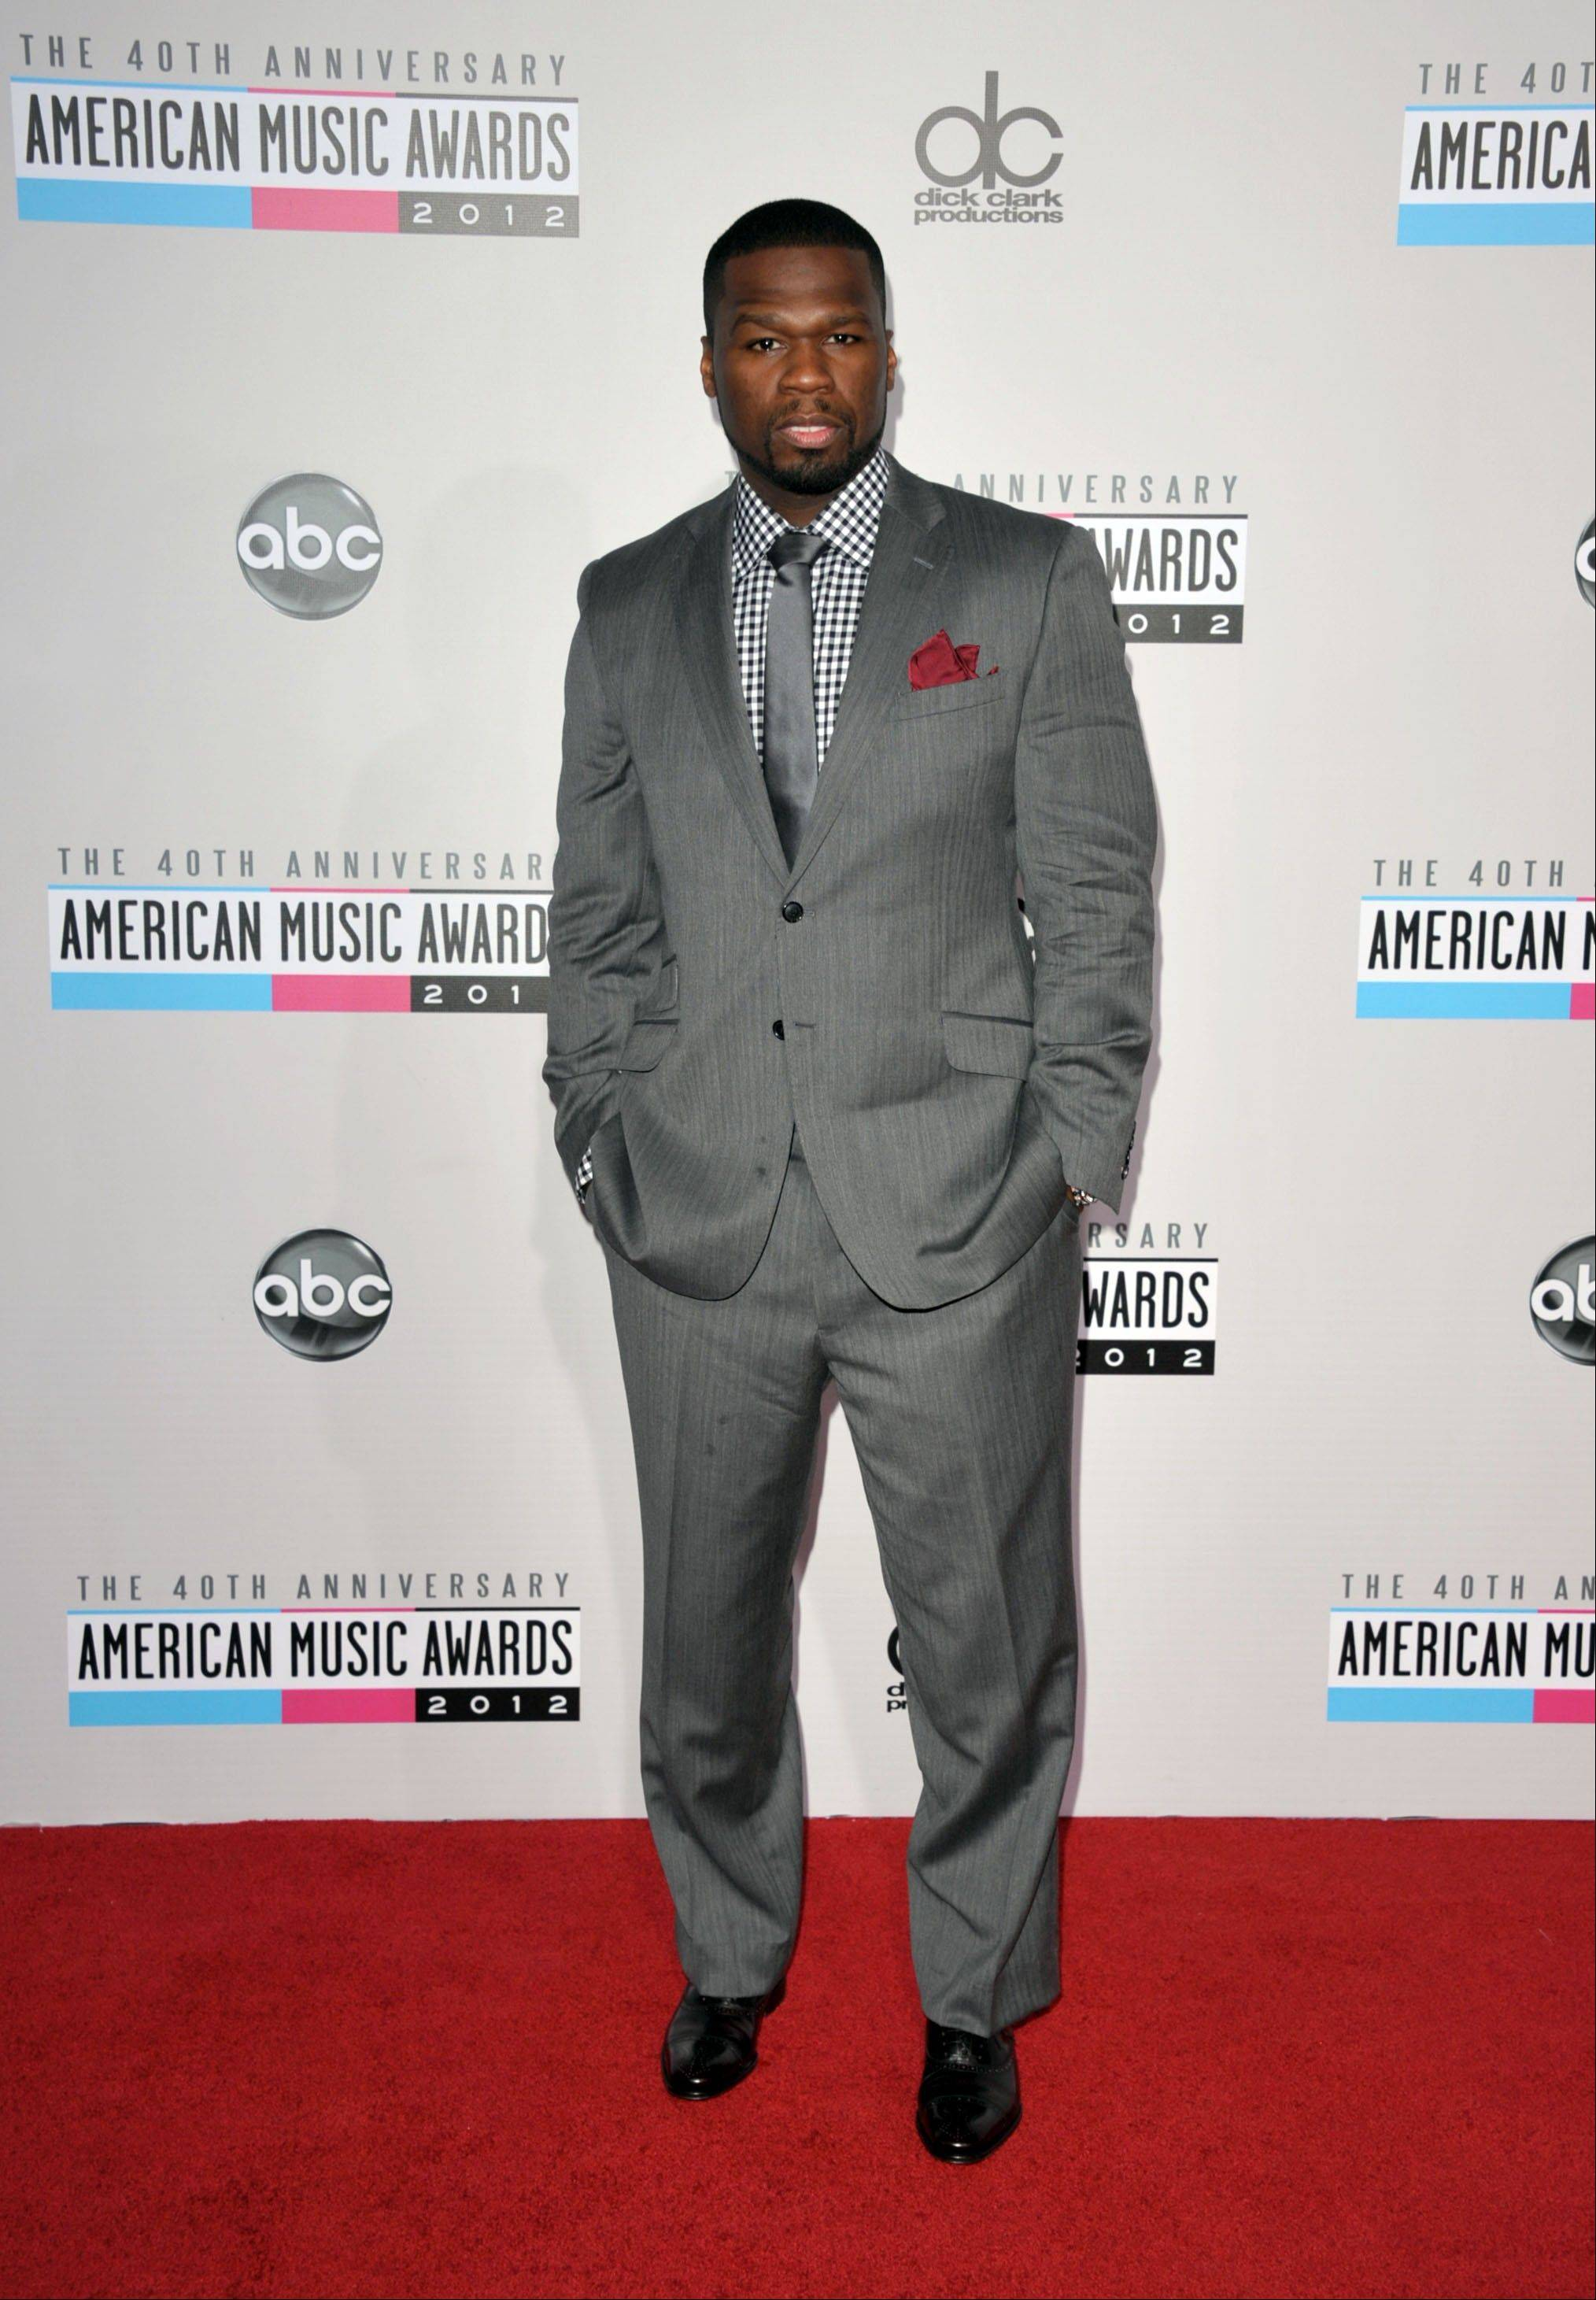 50 Cent aka Curtis Jackson arrives at the 40th Anniversary American Music Awards on Sunday, Nov. 18, 2012, in Los Angeles.